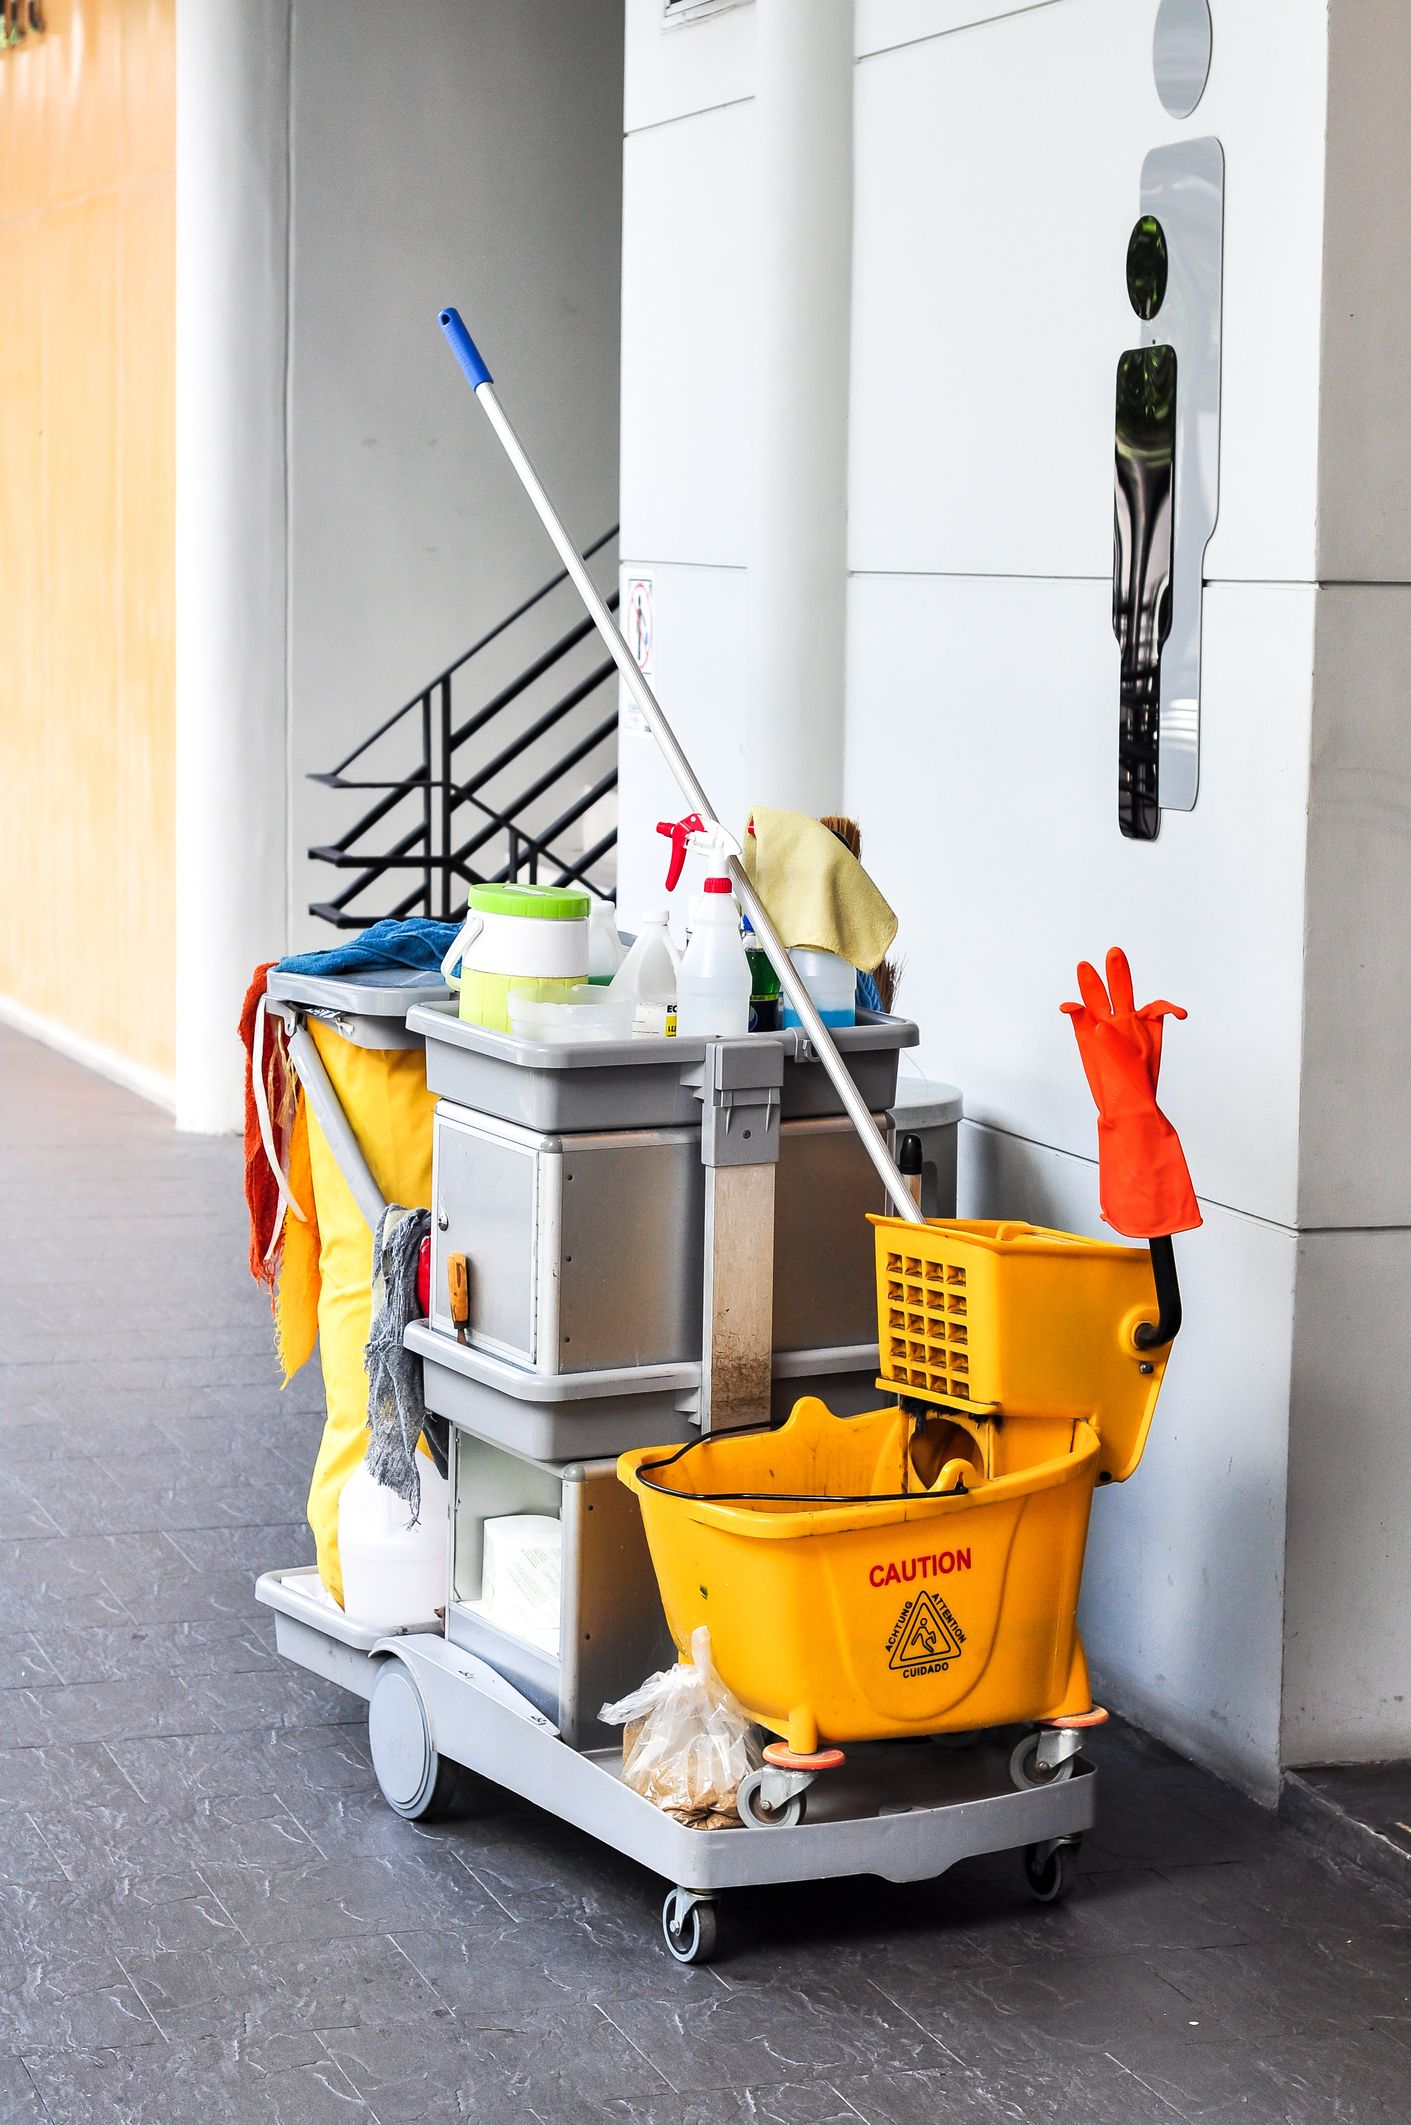 A keen sense of clean offers professional floor care